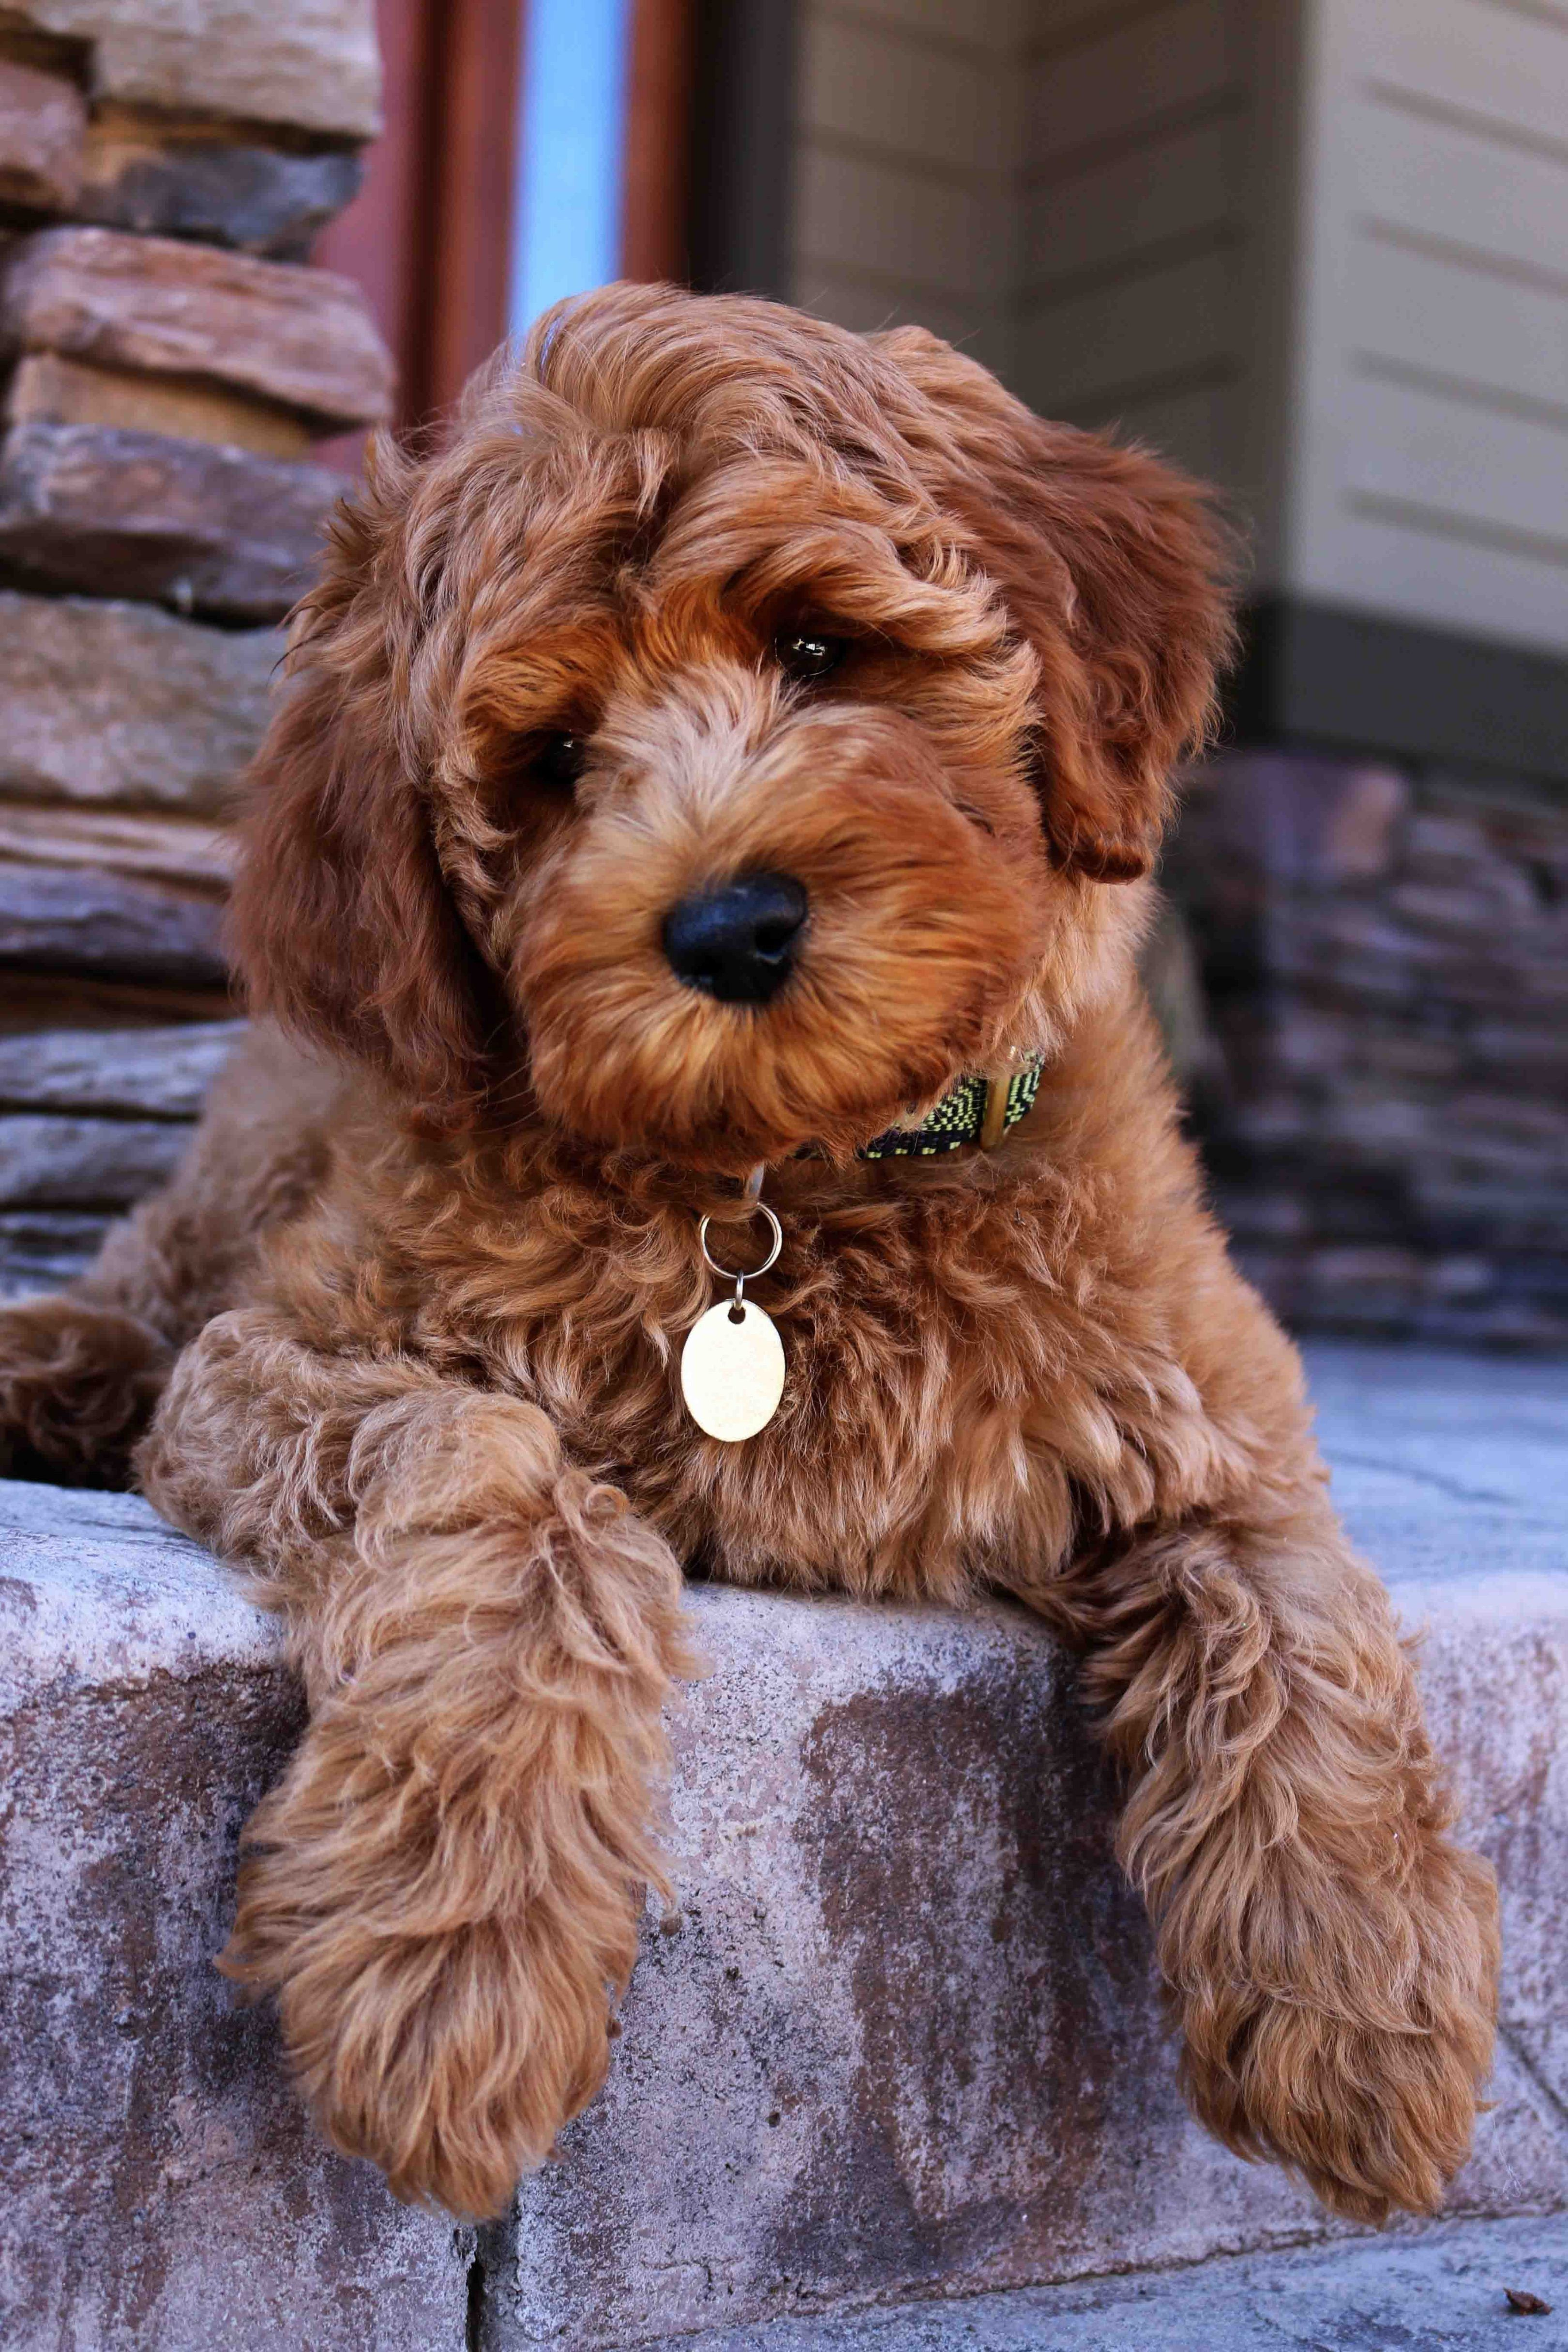 Labradoodle Puppy Adoption Puppy Adoption Mini Goldendoodle Puppies